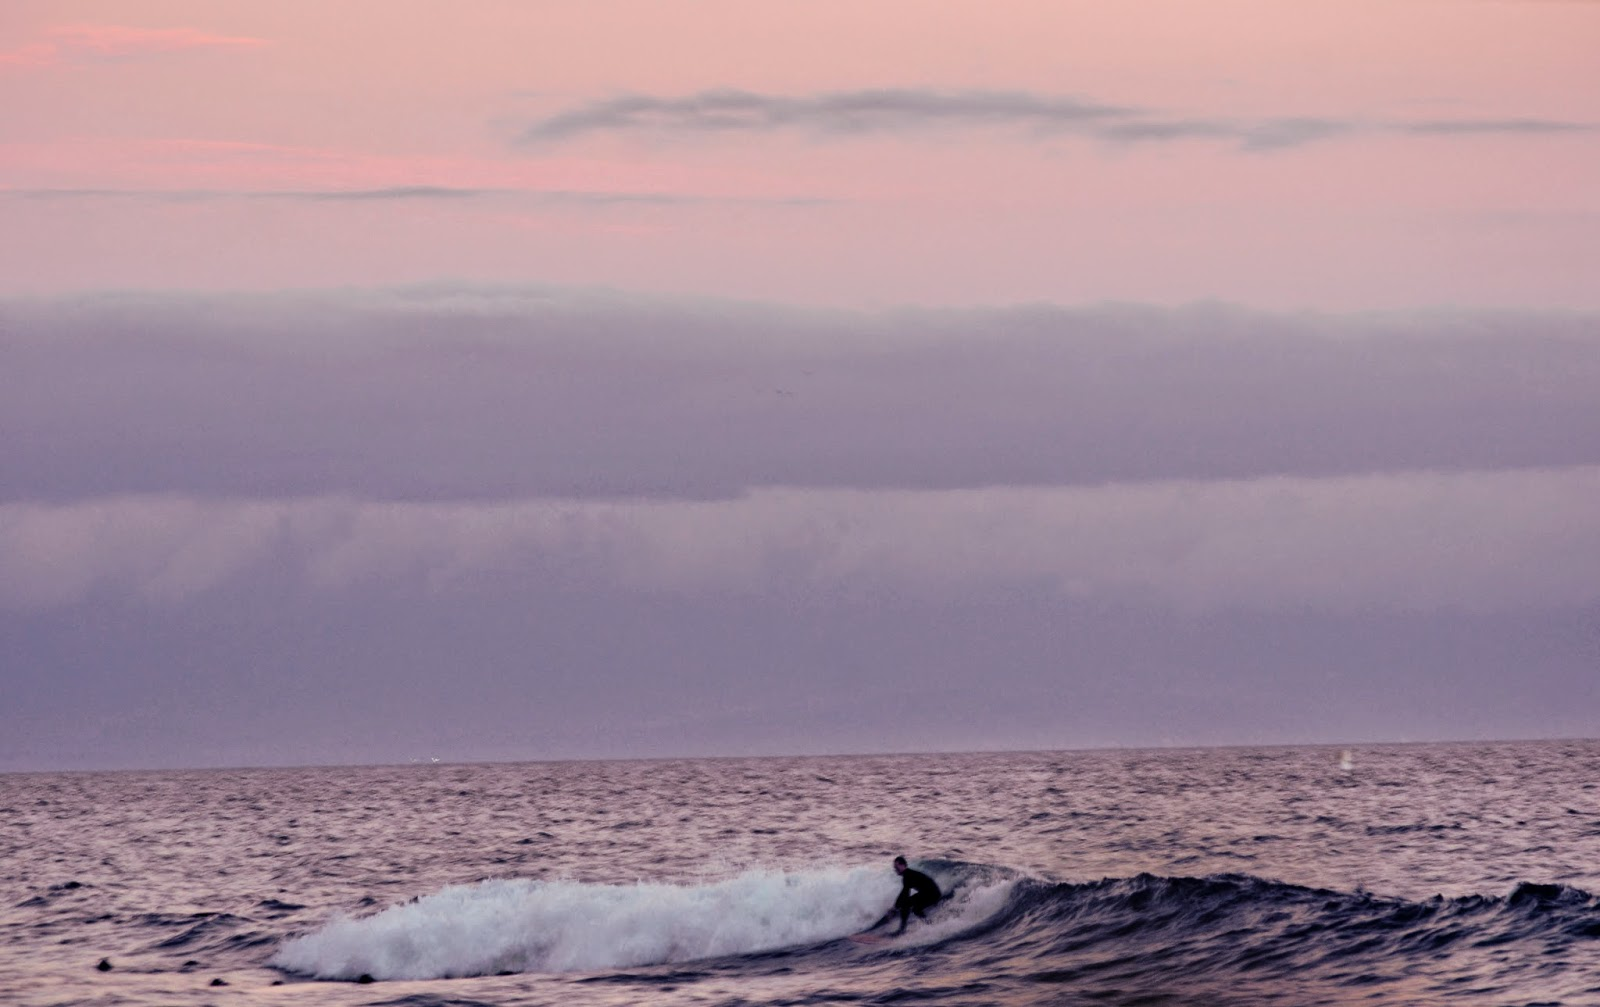 Surfer at Dusk in Cape Town